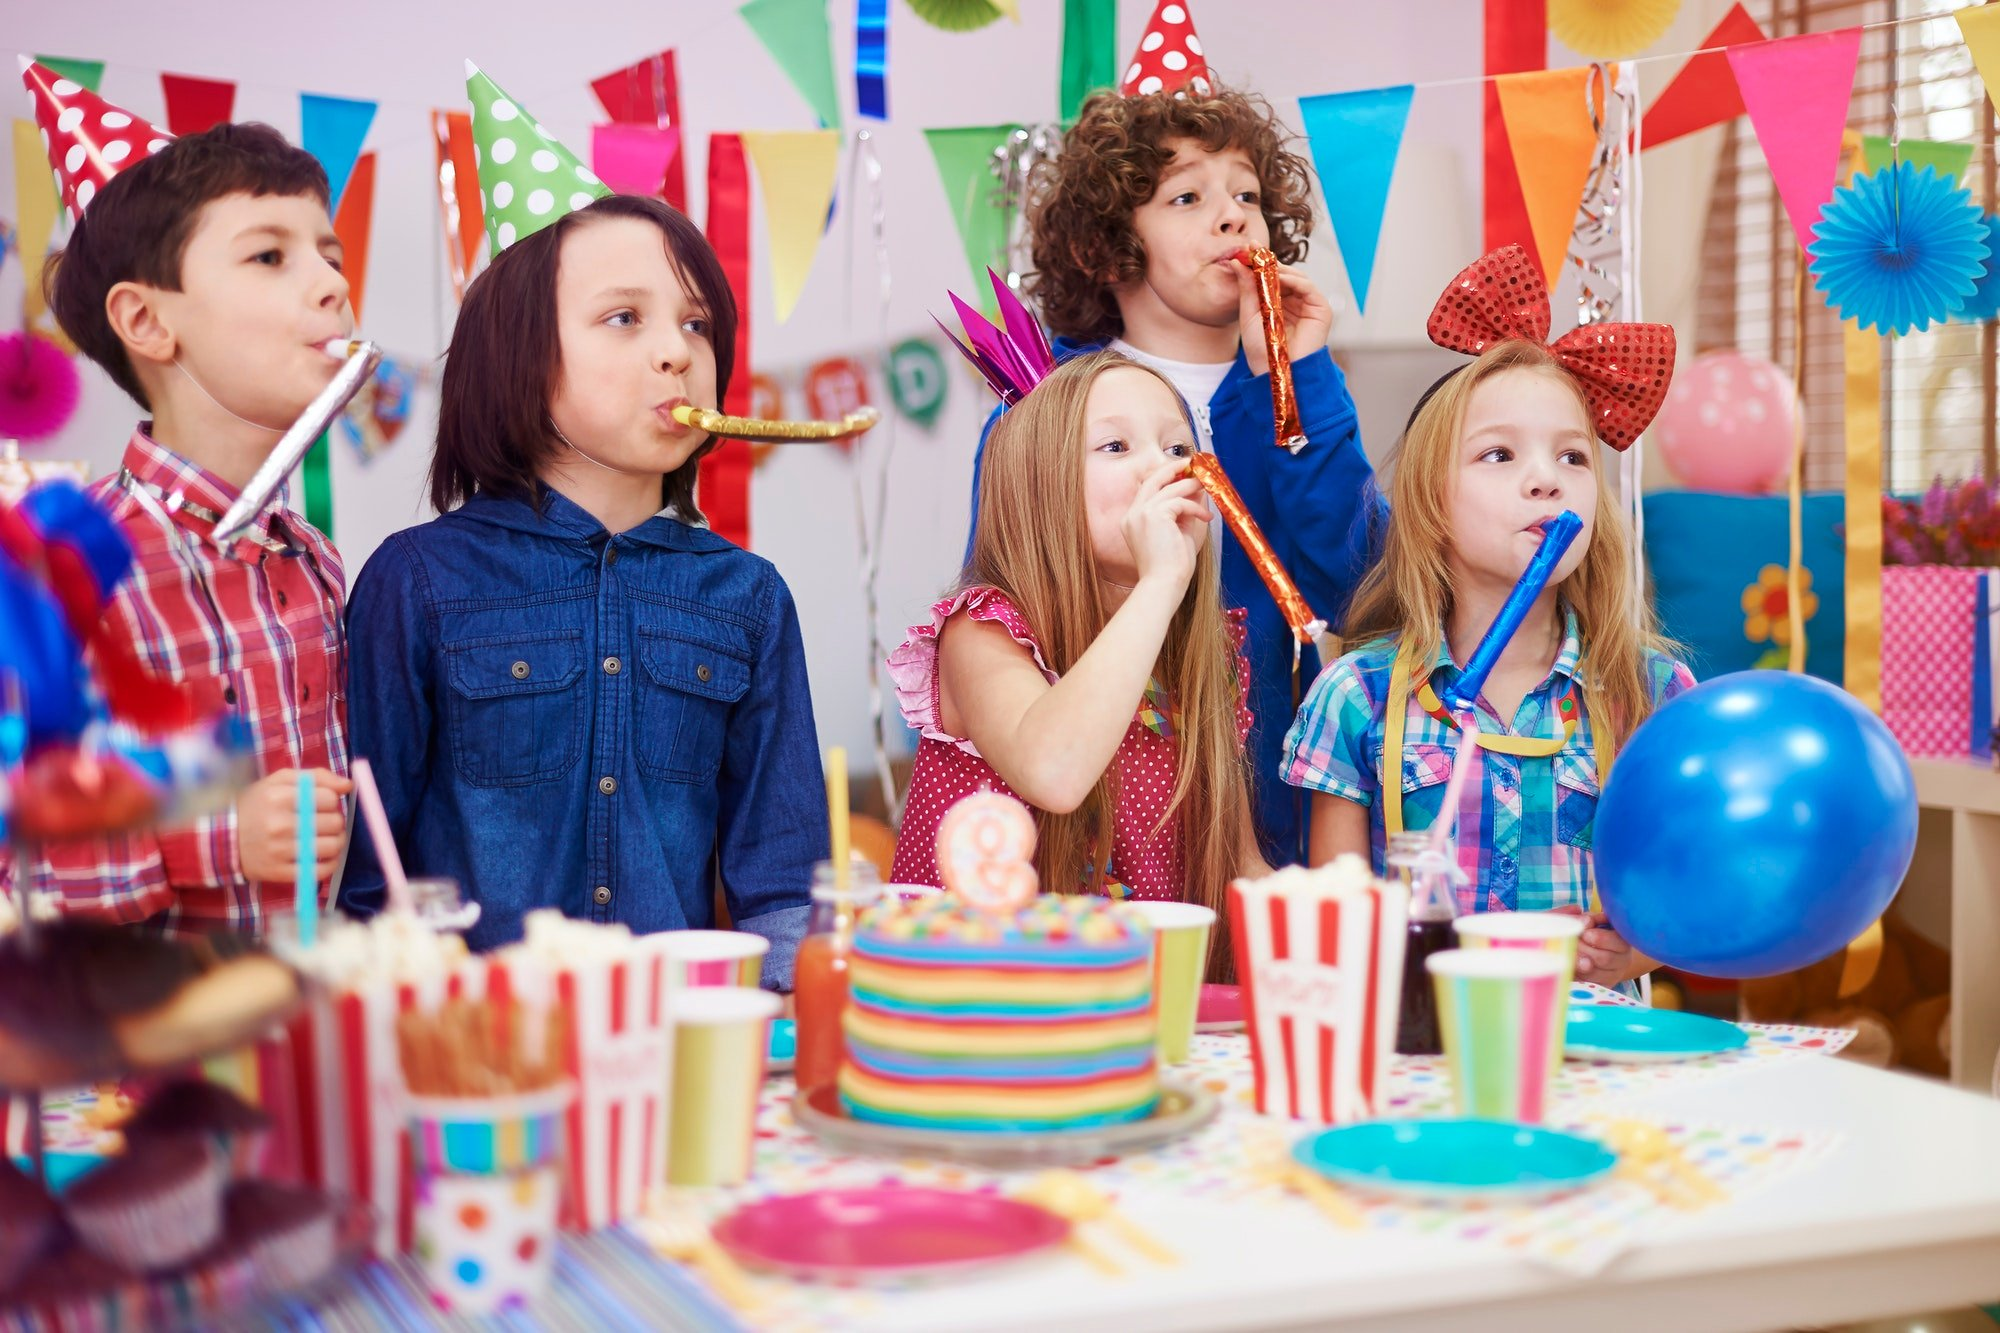 Huge noise at the kid's birthday party